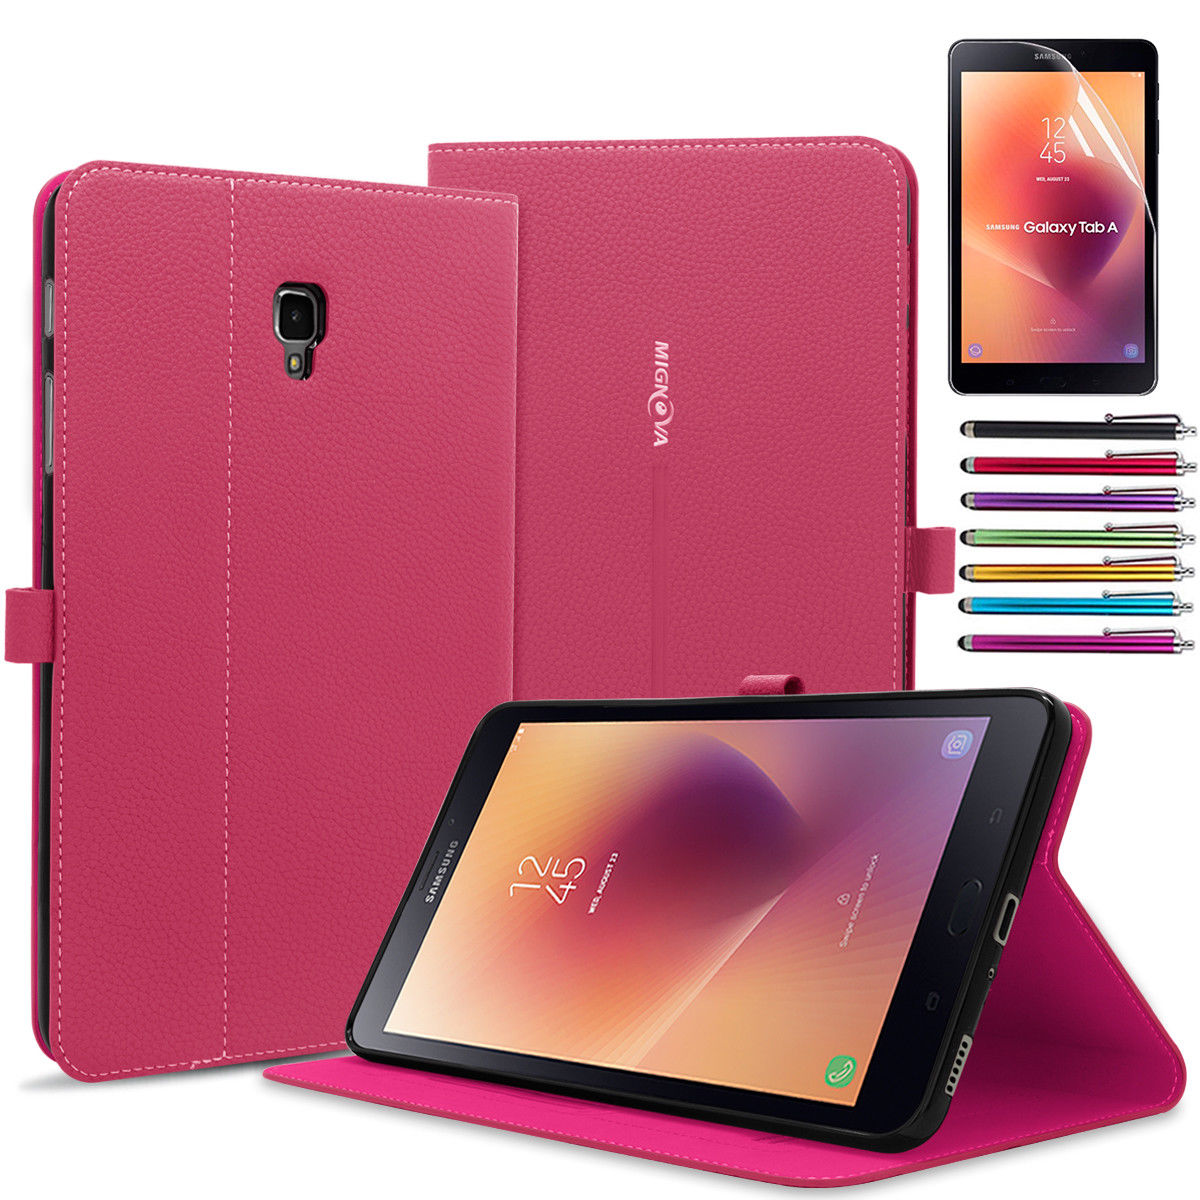 Galaxy Tab A 8.0 Case,Mignova Slim-Fit with Auto Sleep/Wake Feature Case Cover for Samsung Galaxy Tab A 8.0 inch Tablet T380 T385(2017 Release)+ Screen Protector Film and Stylus Pen Black